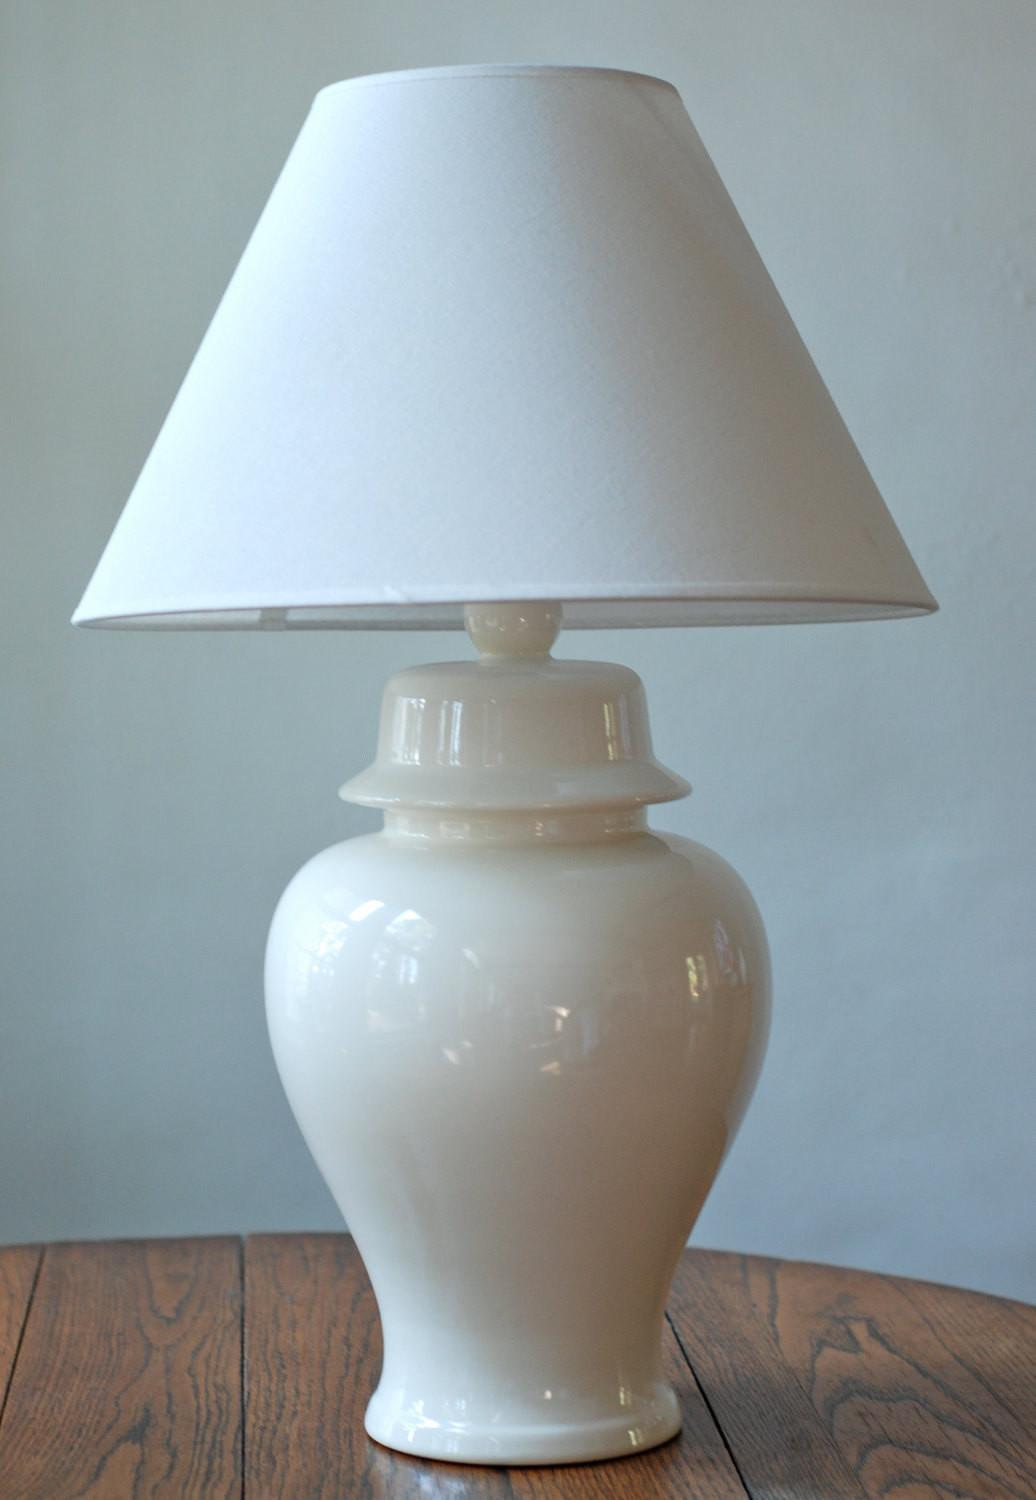 Vintage White Ceramic Ginger Jar Table Lamp